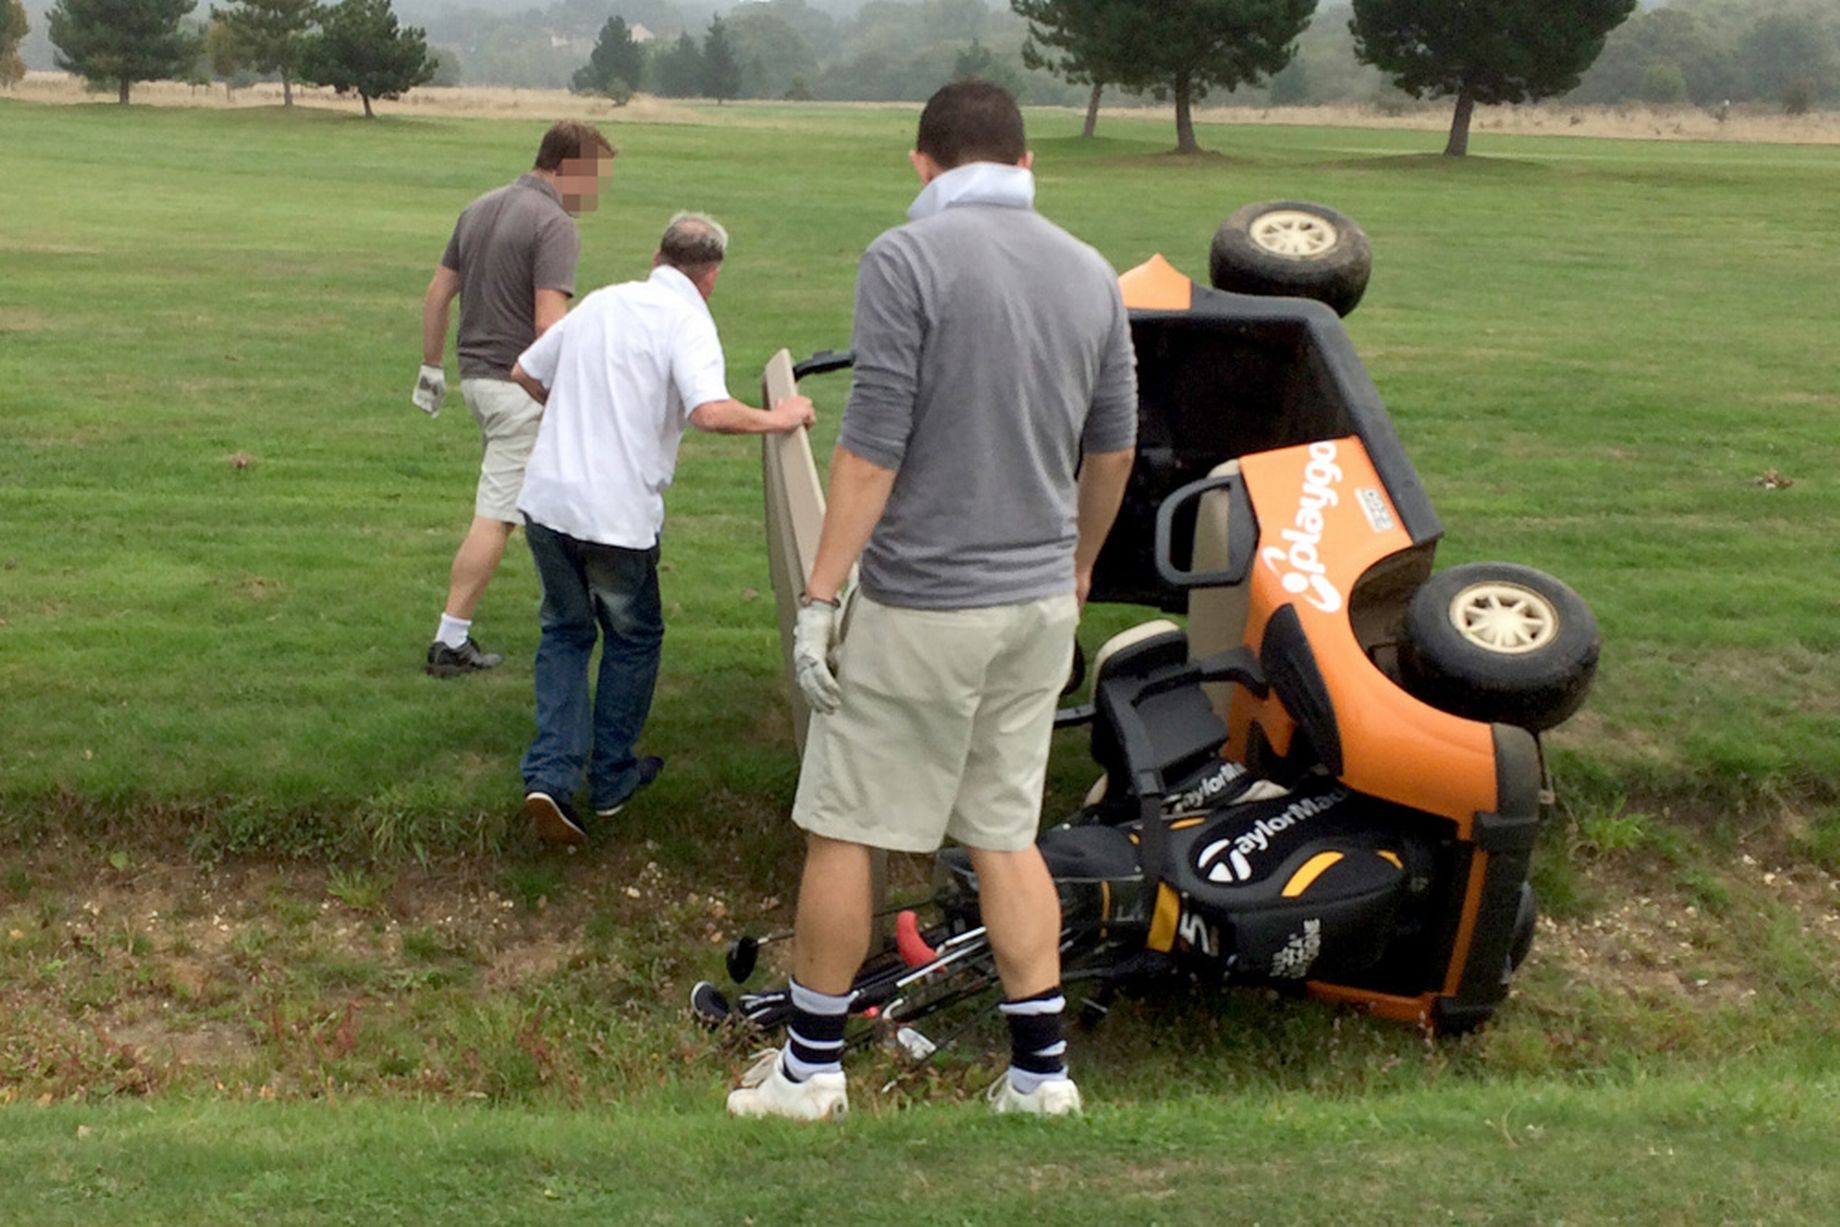 Drunk driving, even while golfing is dangerous | Golf Humor ... on drunk driving animation, drunk driving arrest and jail, drunk driving statistics, drunk driving simulator, drunk golf cart accident, drunk driving signs, drunk guy in golf cart, drunk driving victims, guy yelling on a golf cart, drunk driving clip art, drunk mini golf, drunk driving deaths,